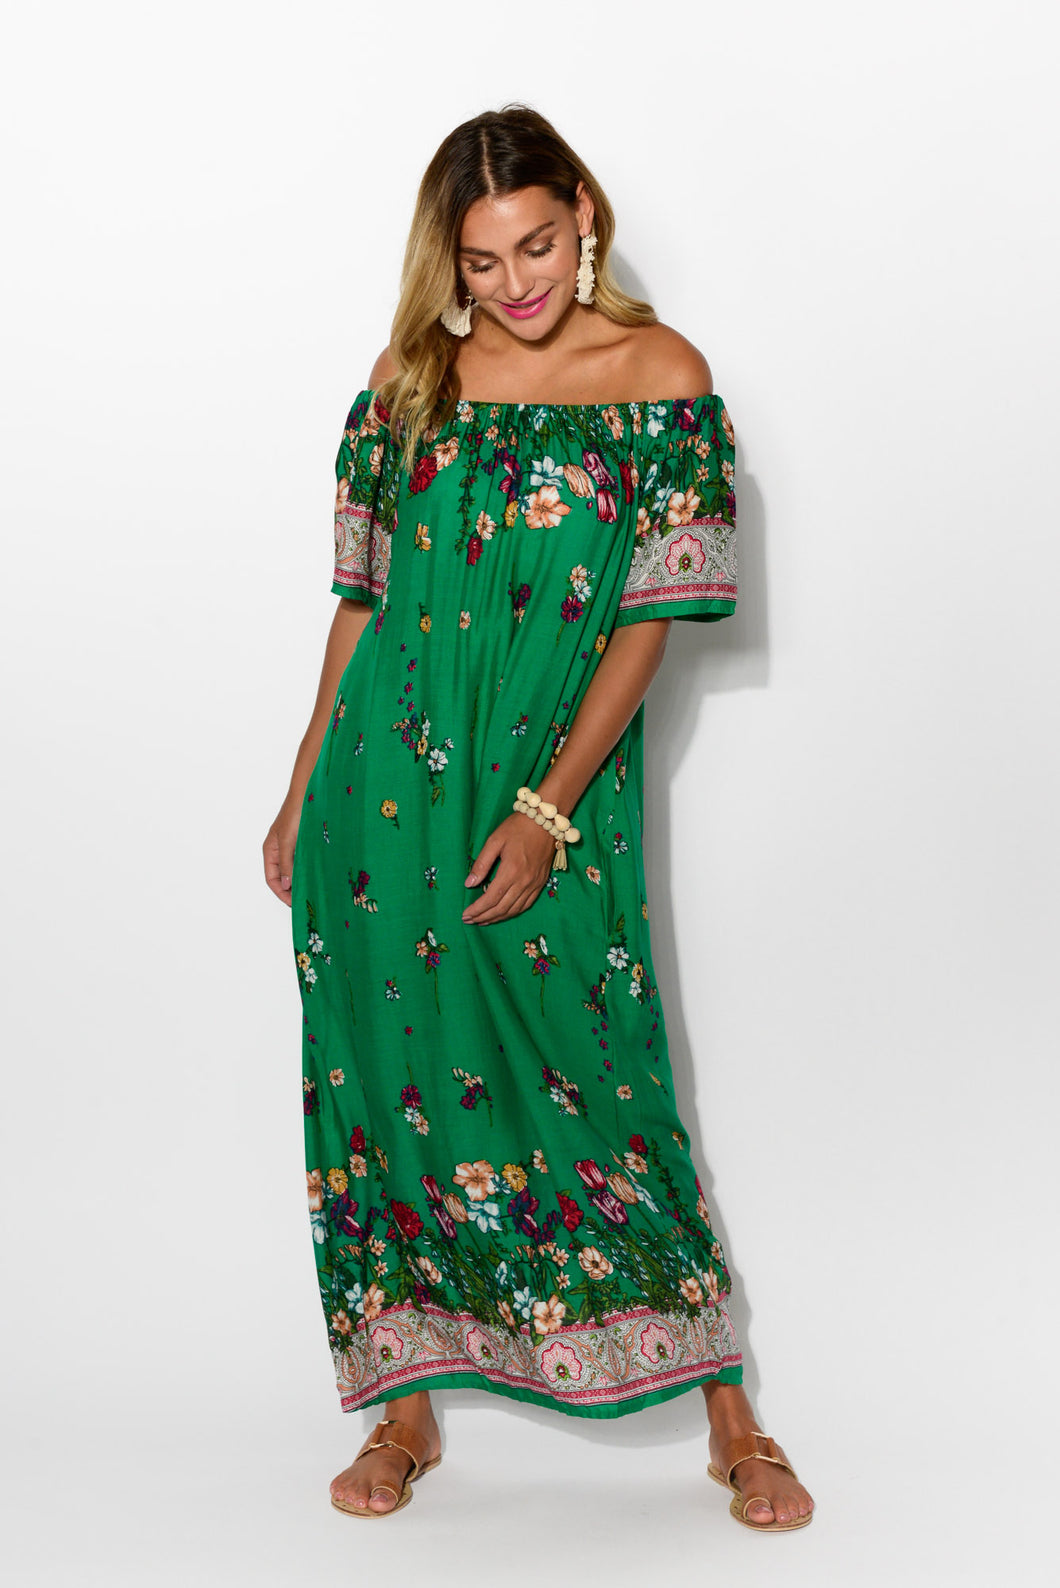 Jaymie Moss Floral Off Shoulder Dress